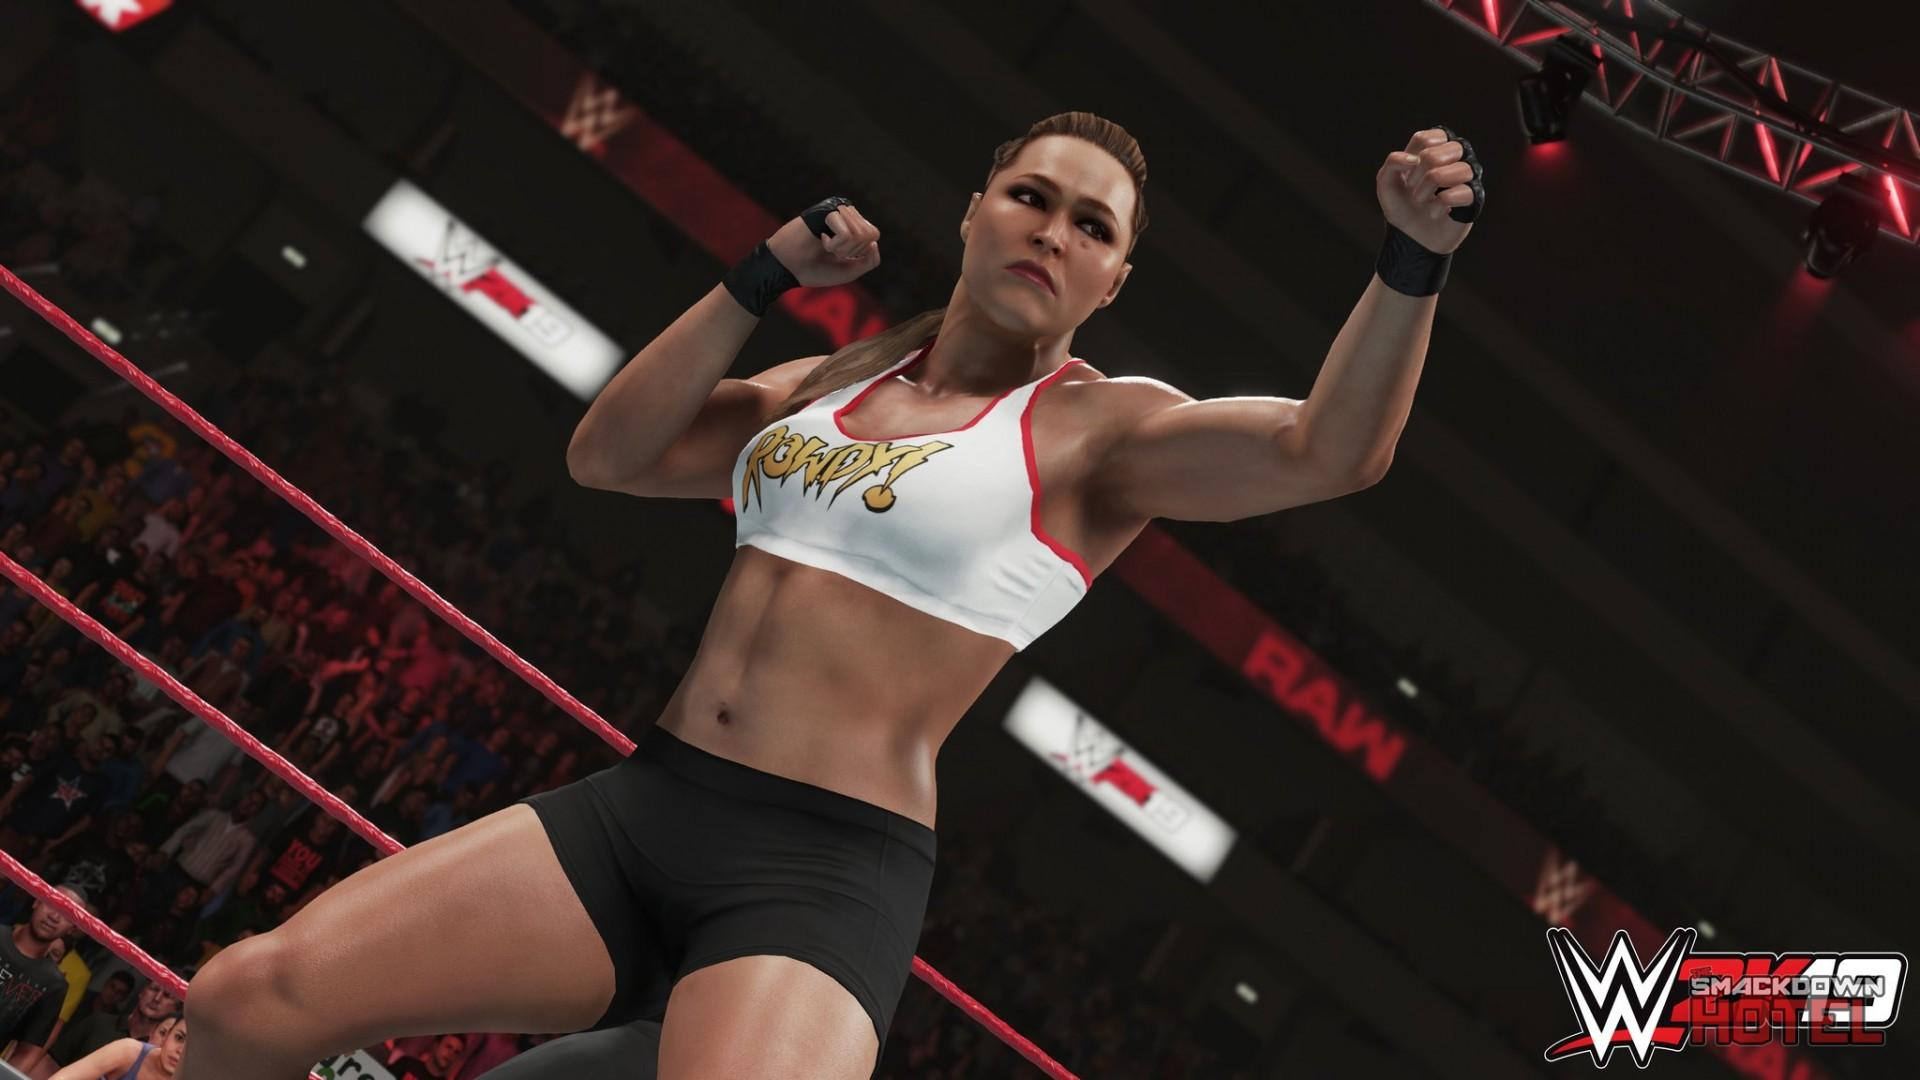 WWE 2K19: First Ronda Rousey Screenshot Released